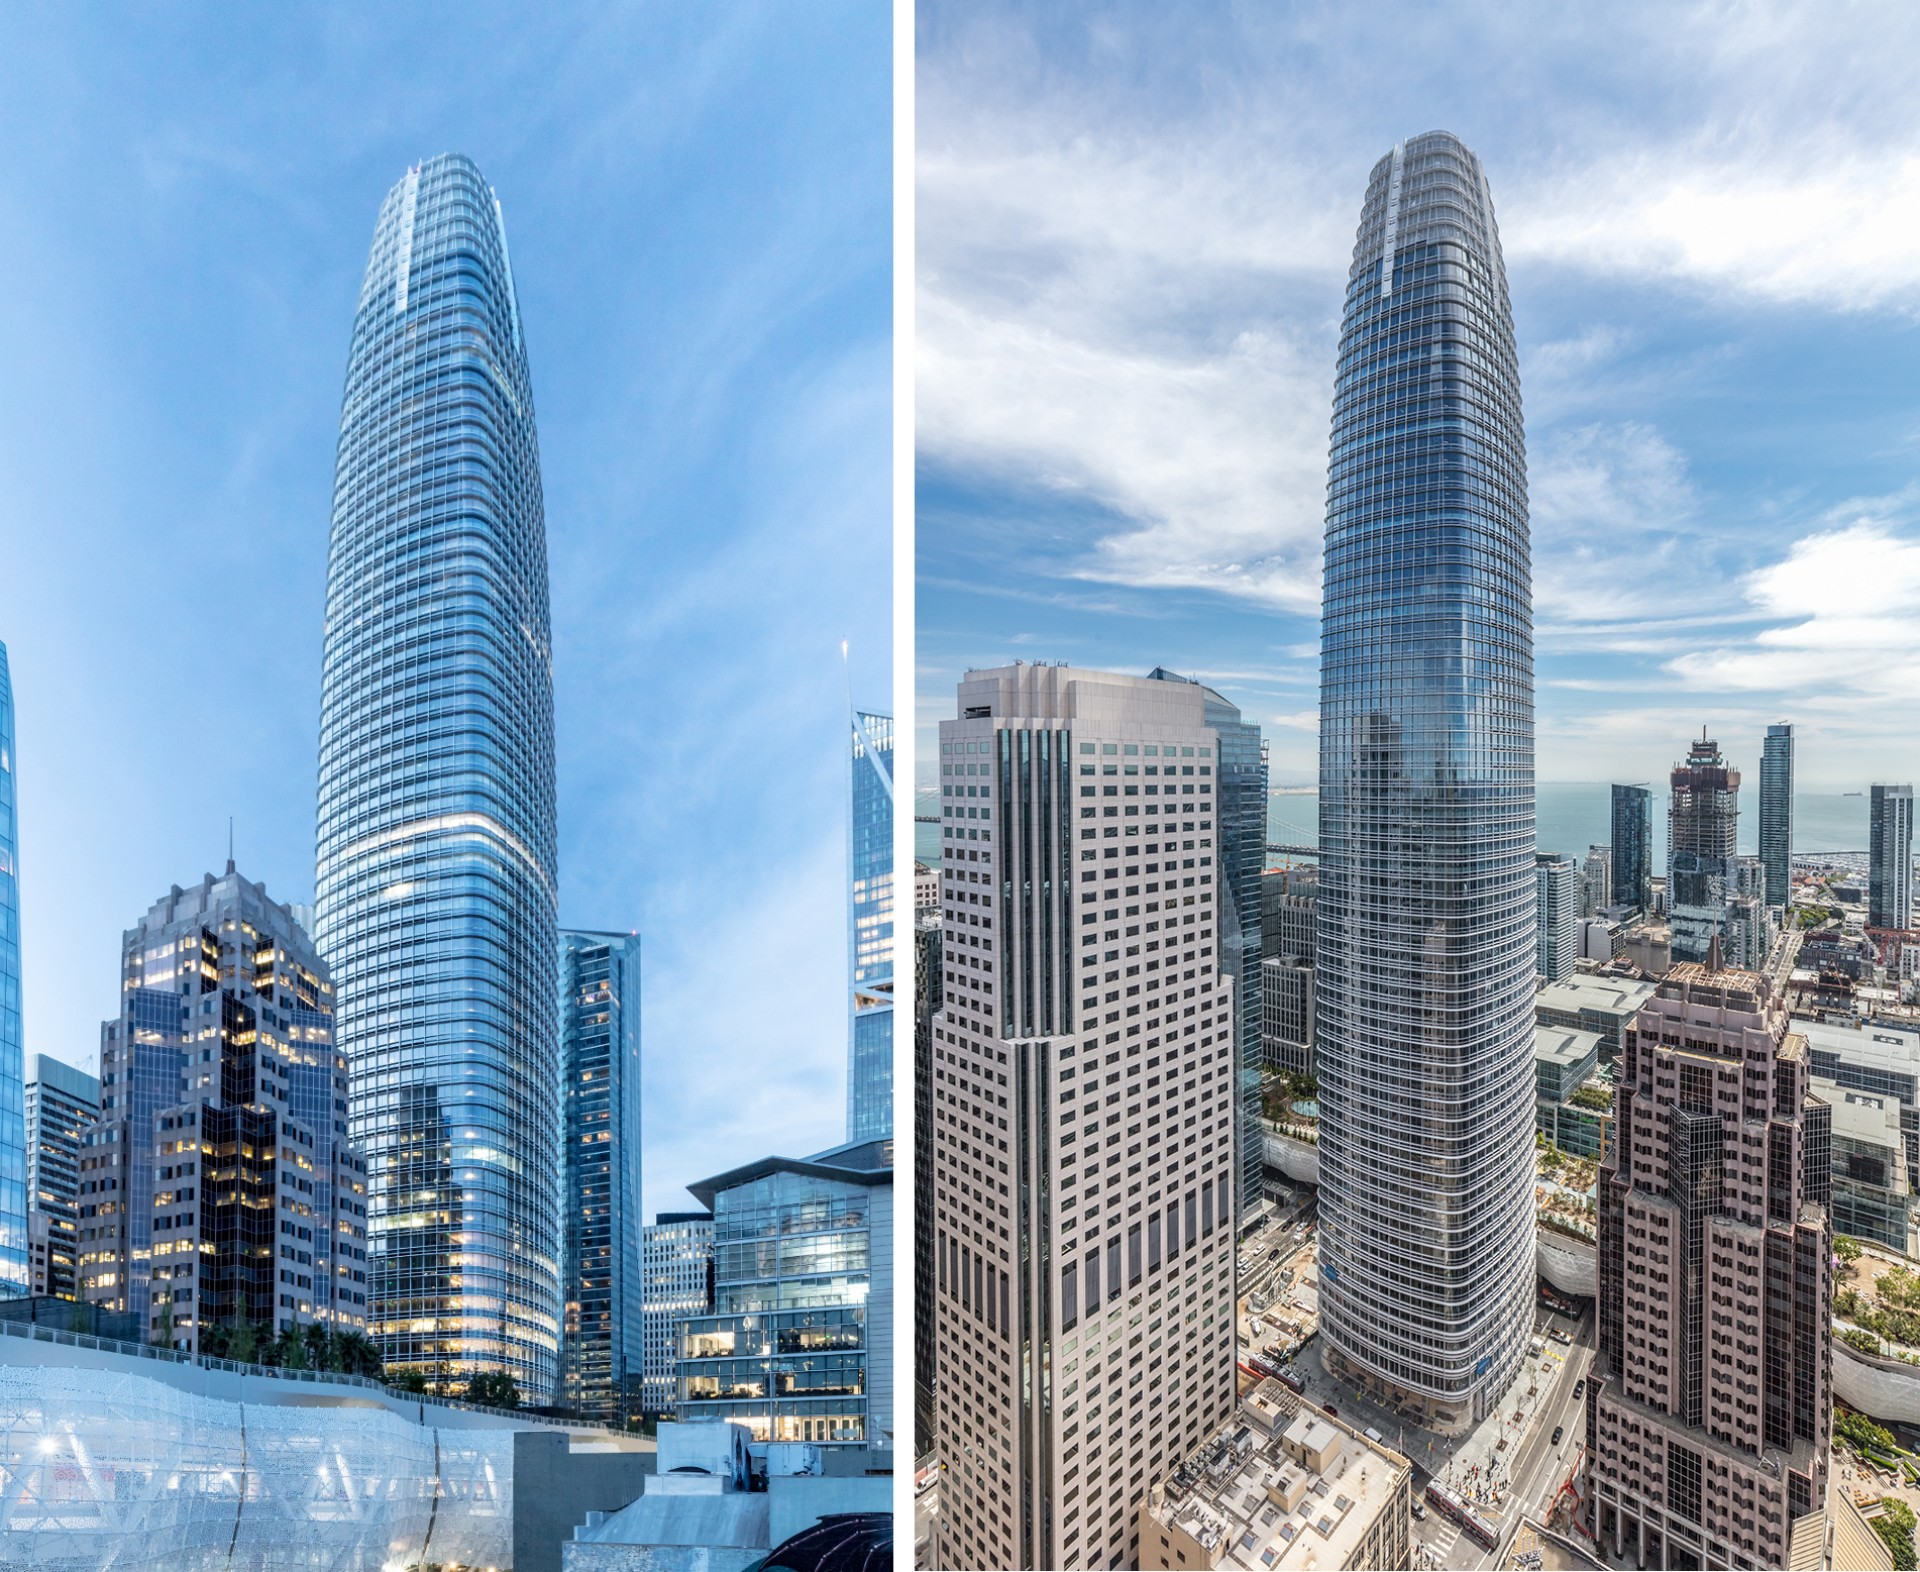 The best skyscrapers of 2019 according to the CTBUH | Floornature